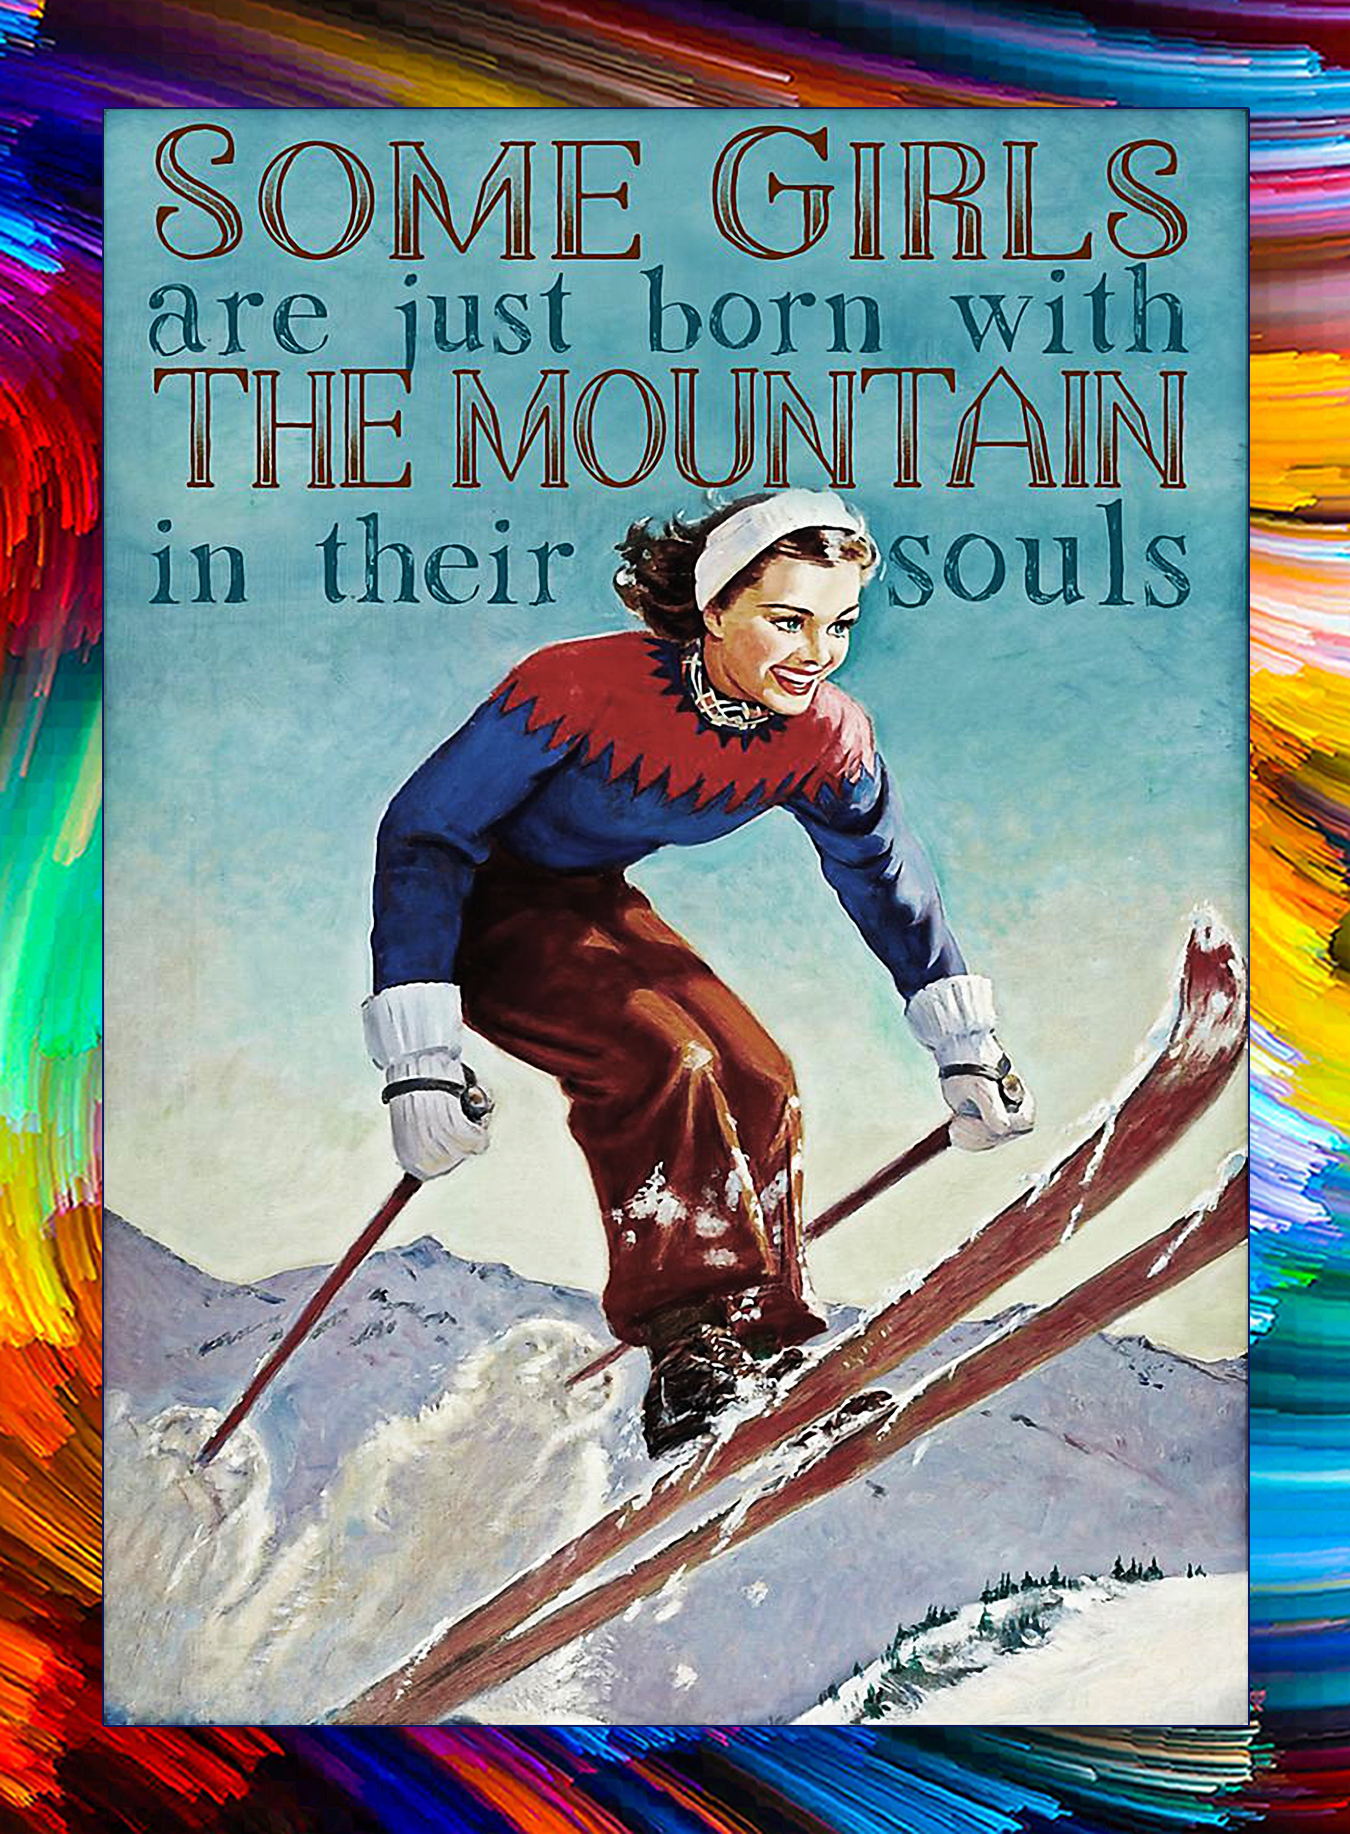 Skiing some girls are just born with the mountain poster - A3